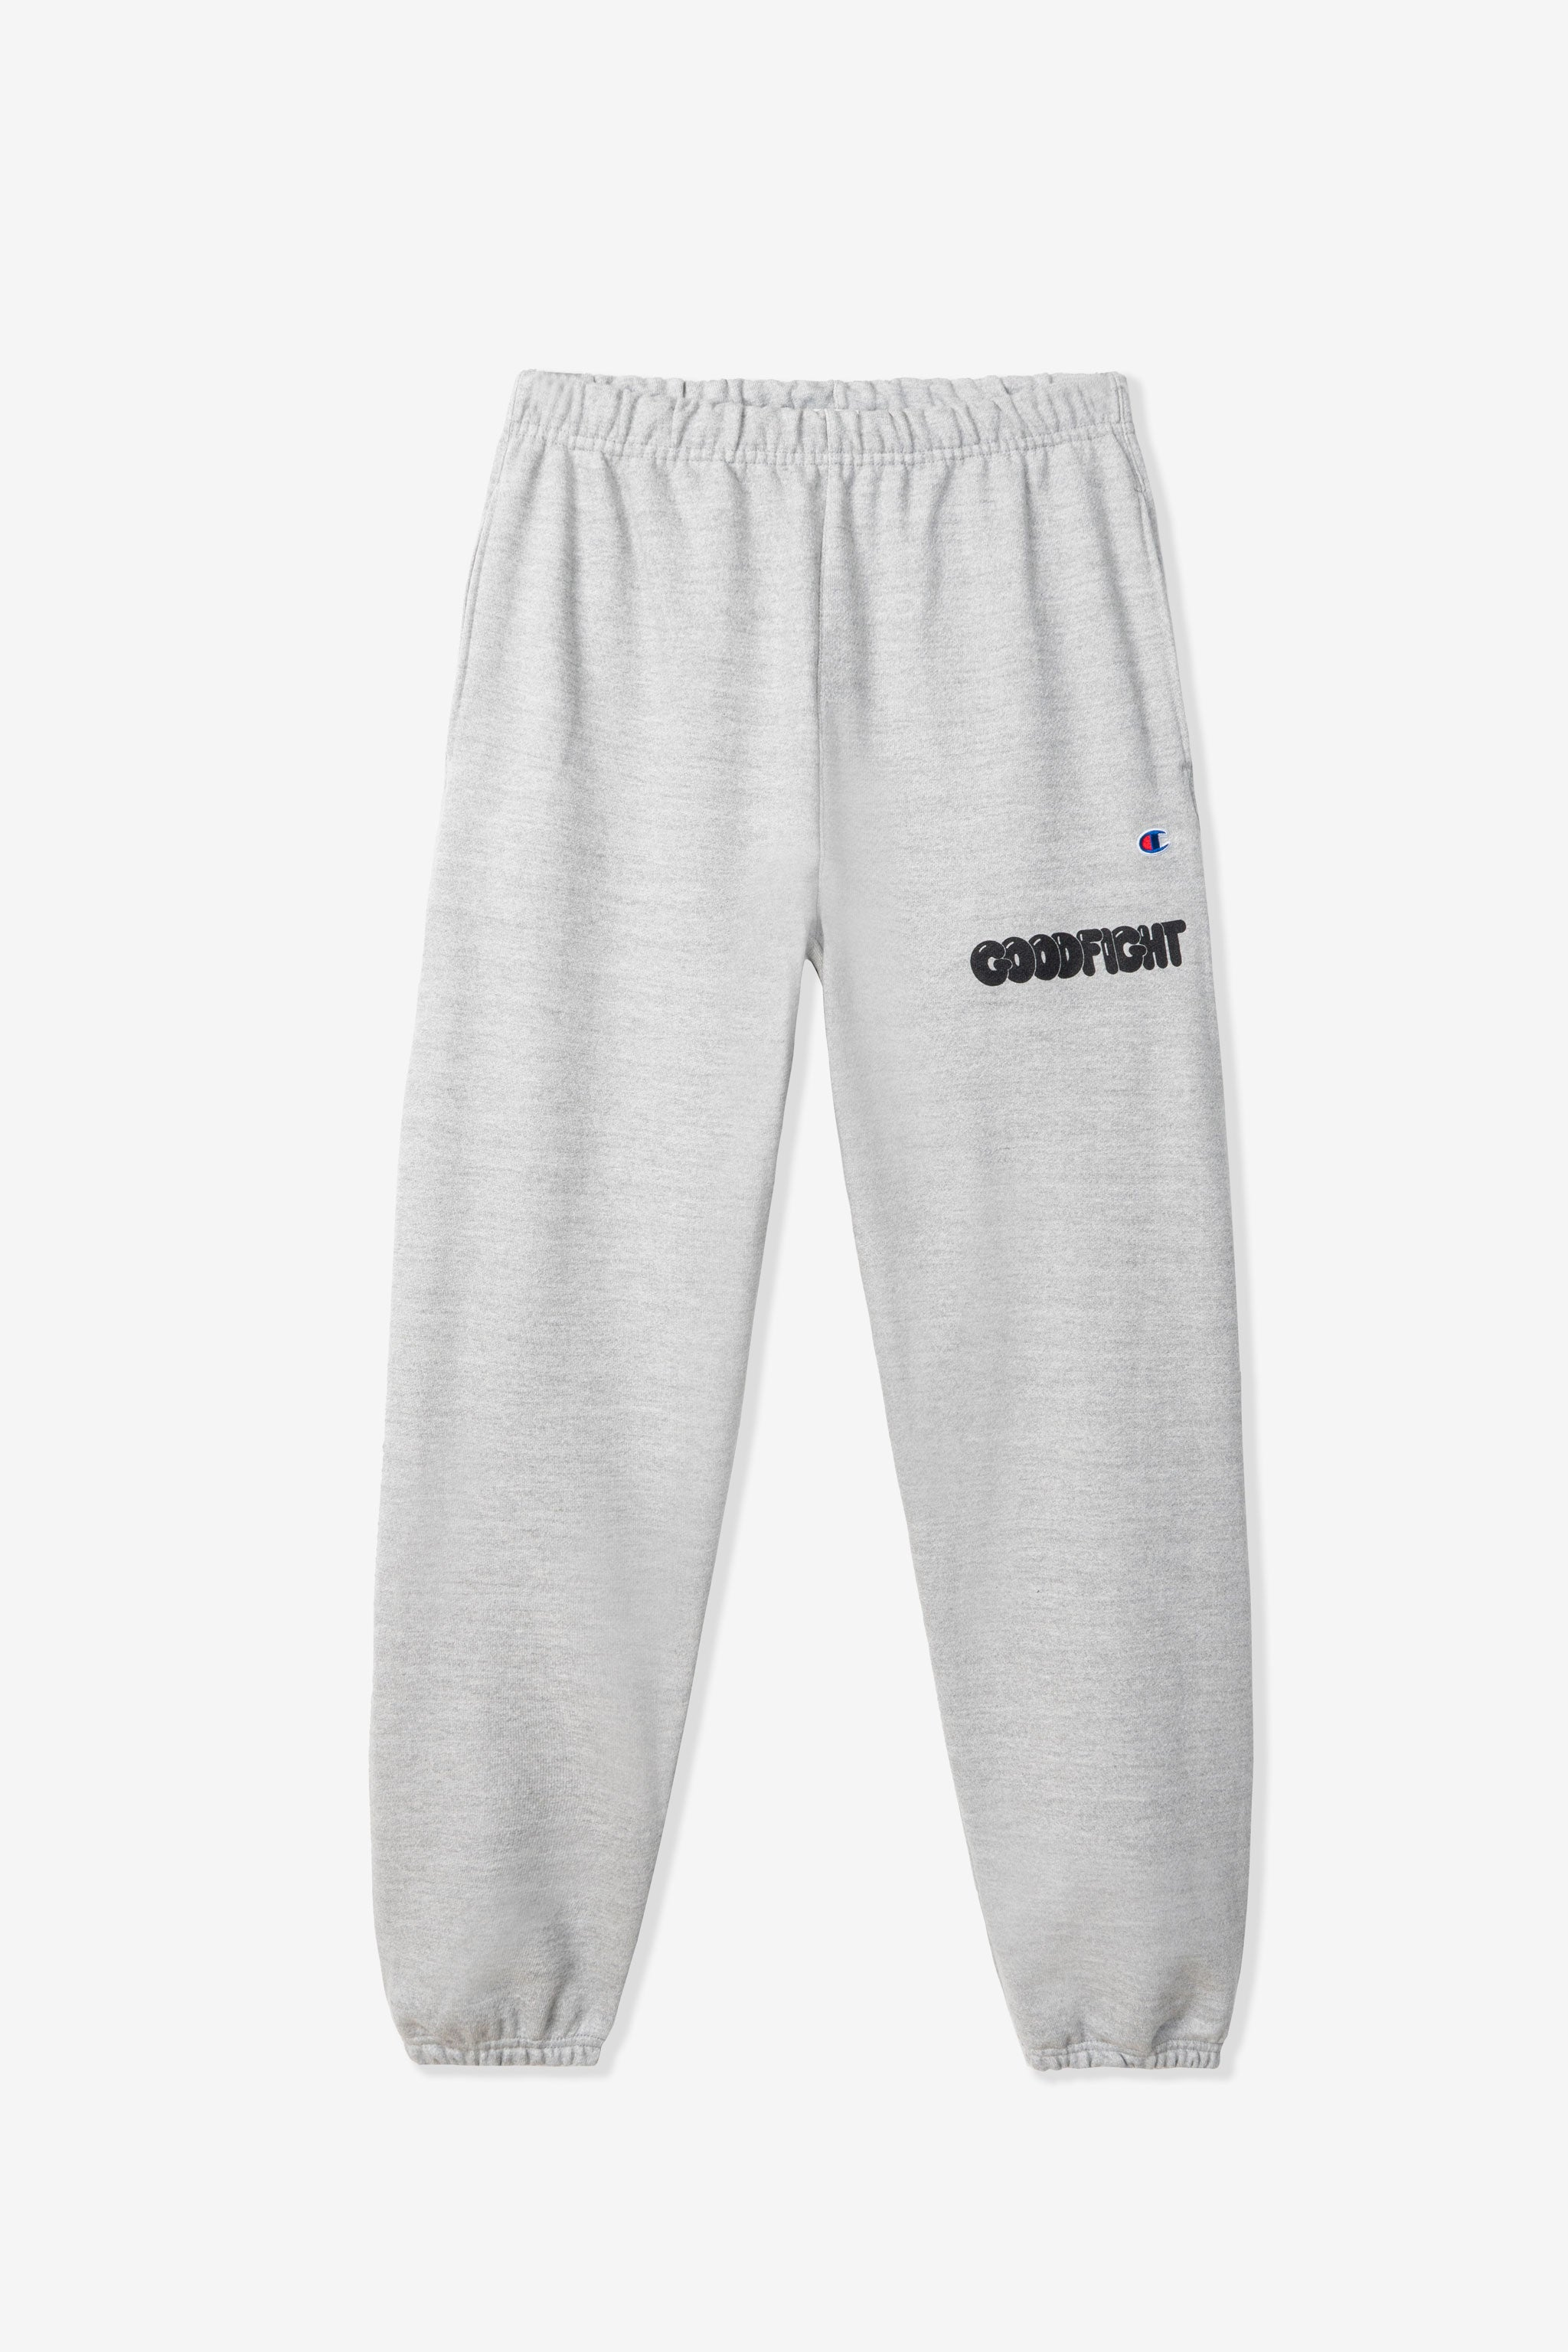 Goodfight by Darlings Bubble Logo Champion Reverse Weave Sweatpants